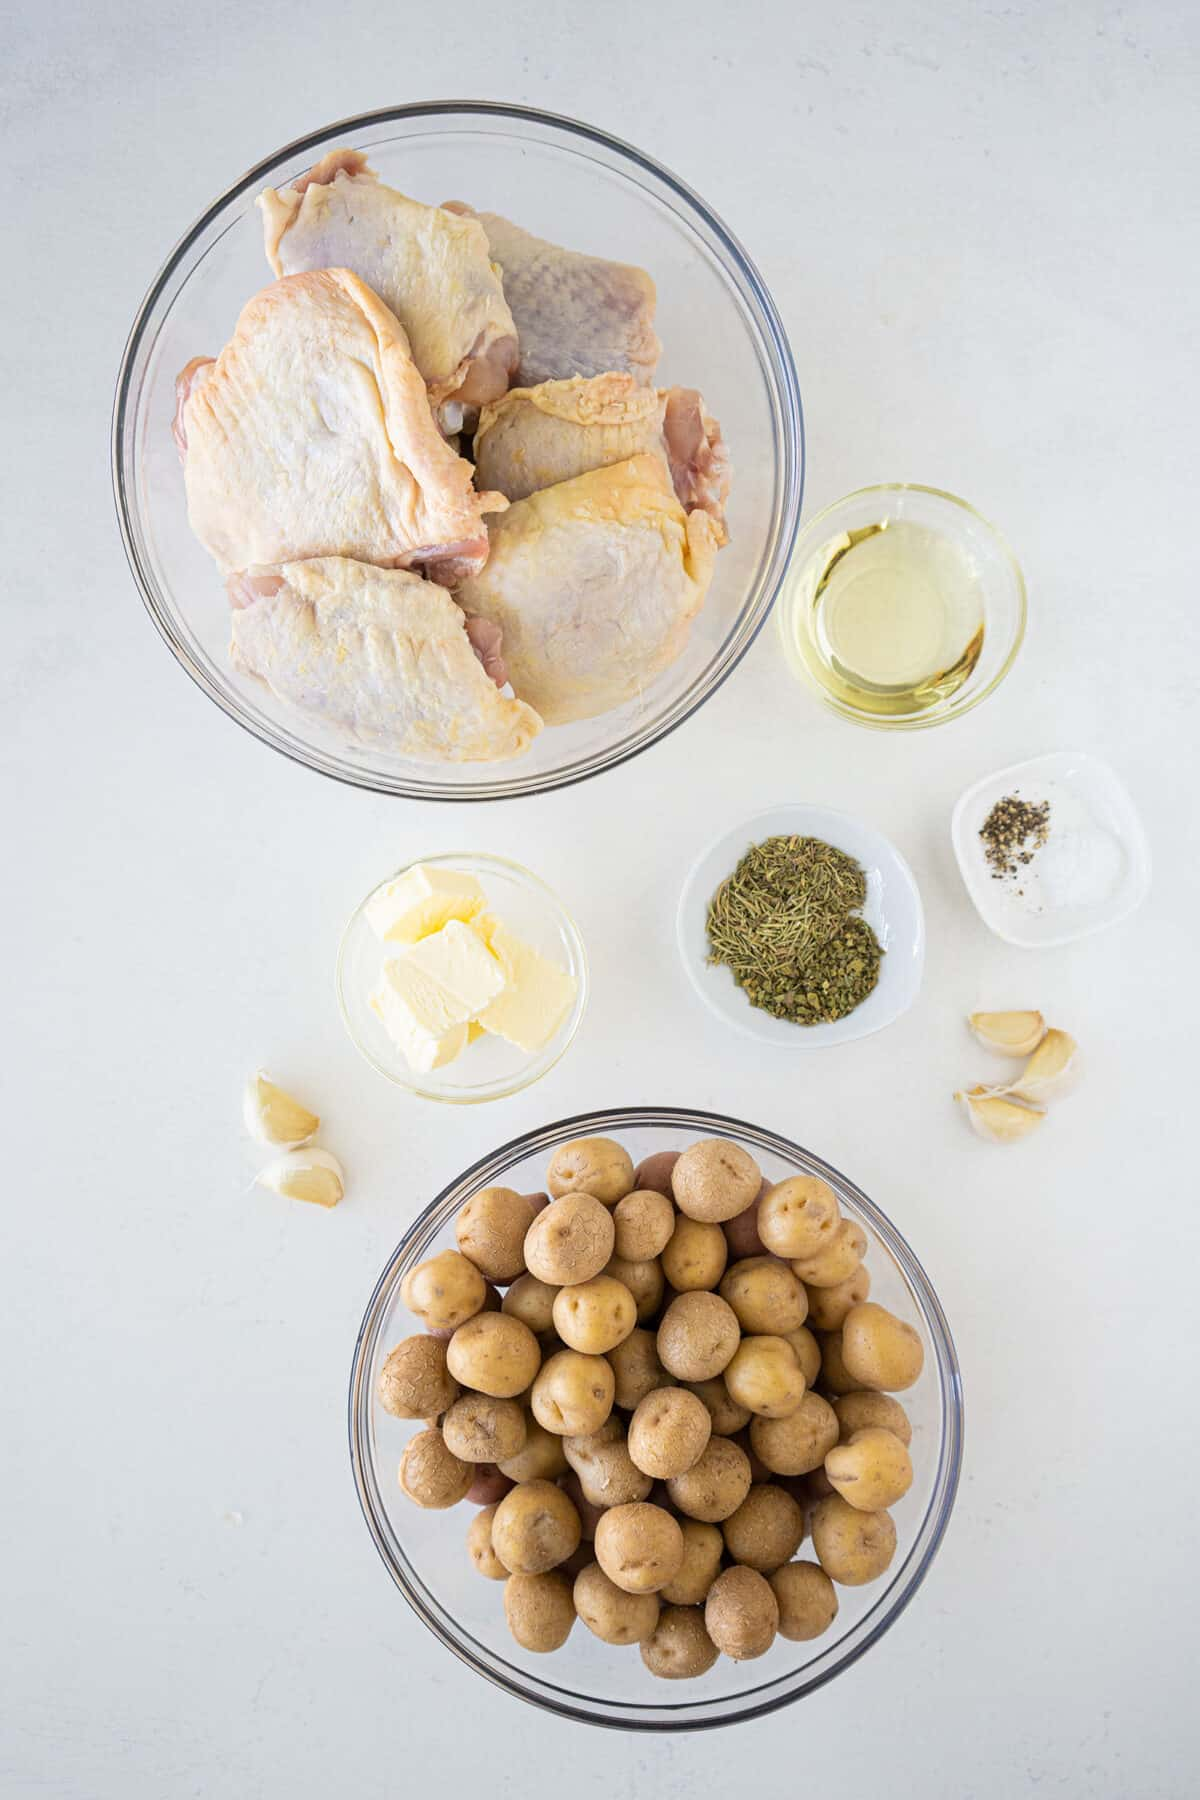 Chicken and Potatoes ingredients on a white counter